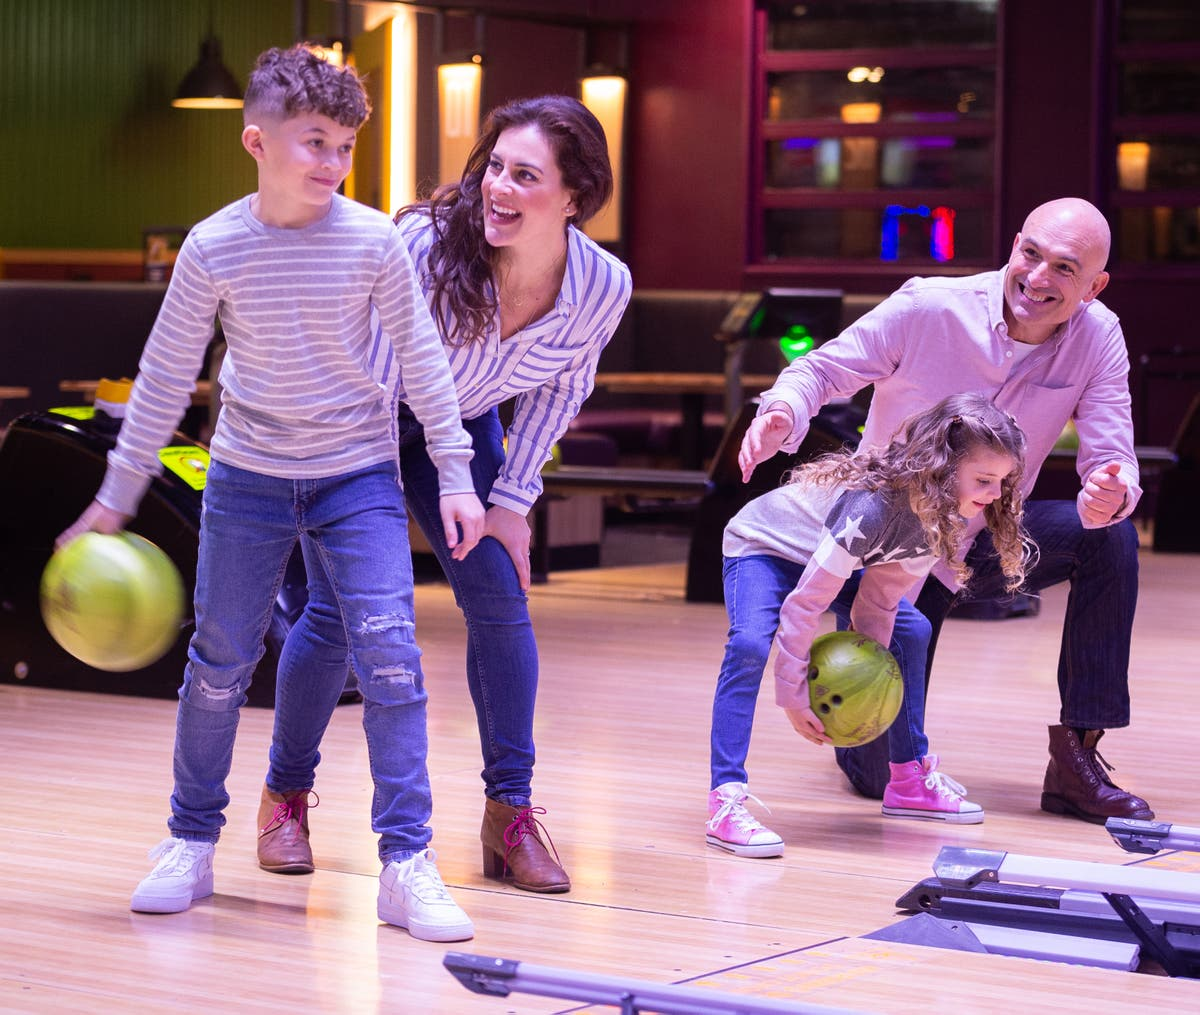 Ten Entertainment boss predicts staycation-fuelled summer as bowling alley group reports 2020 loss